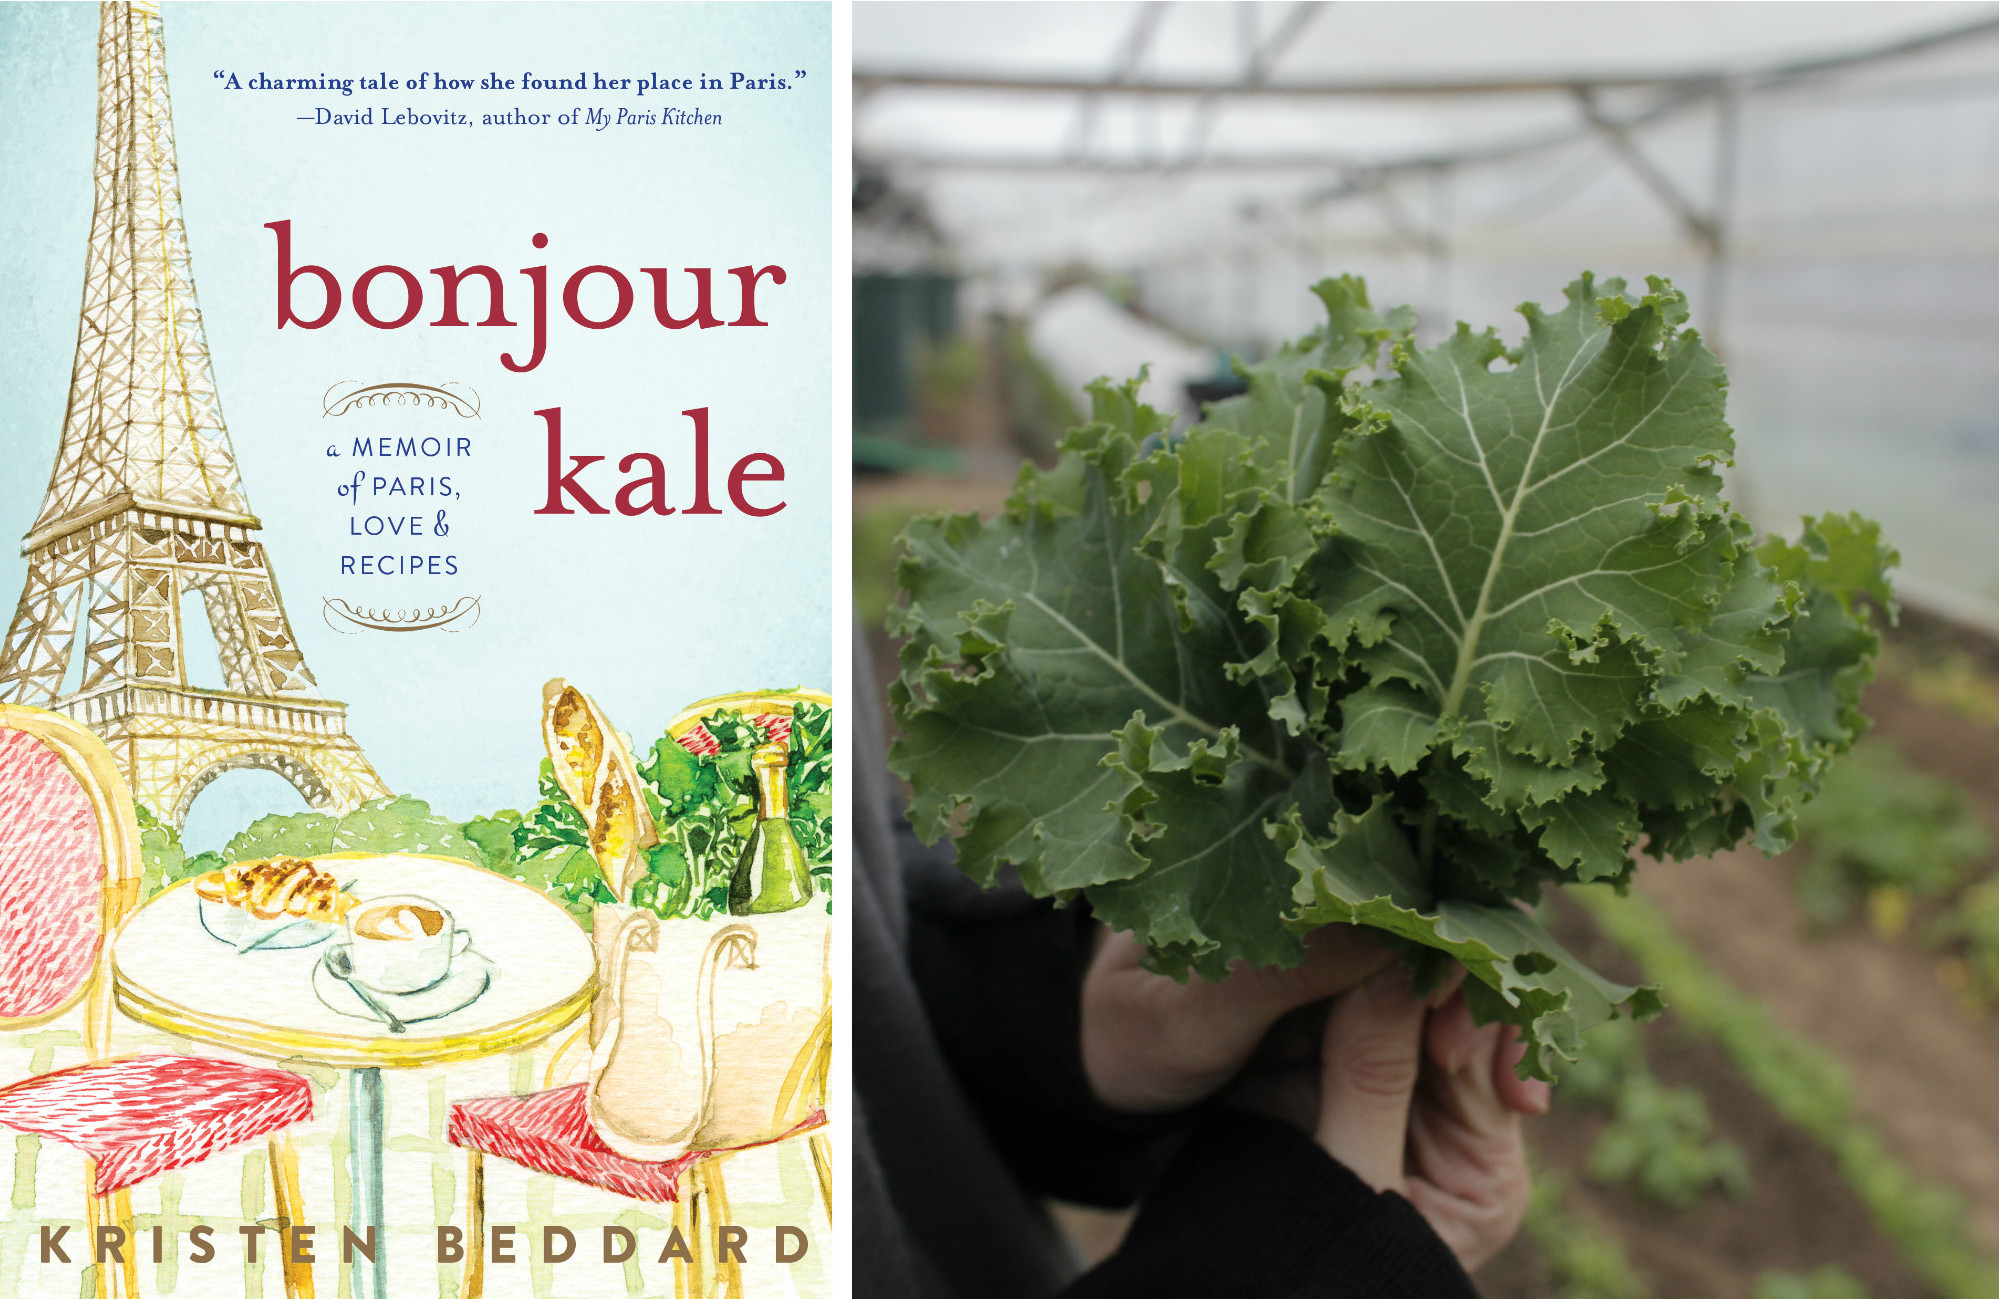 Chatting with Kristen Beddard, Auther of Bonjour Kale and Founder of The Kale Project